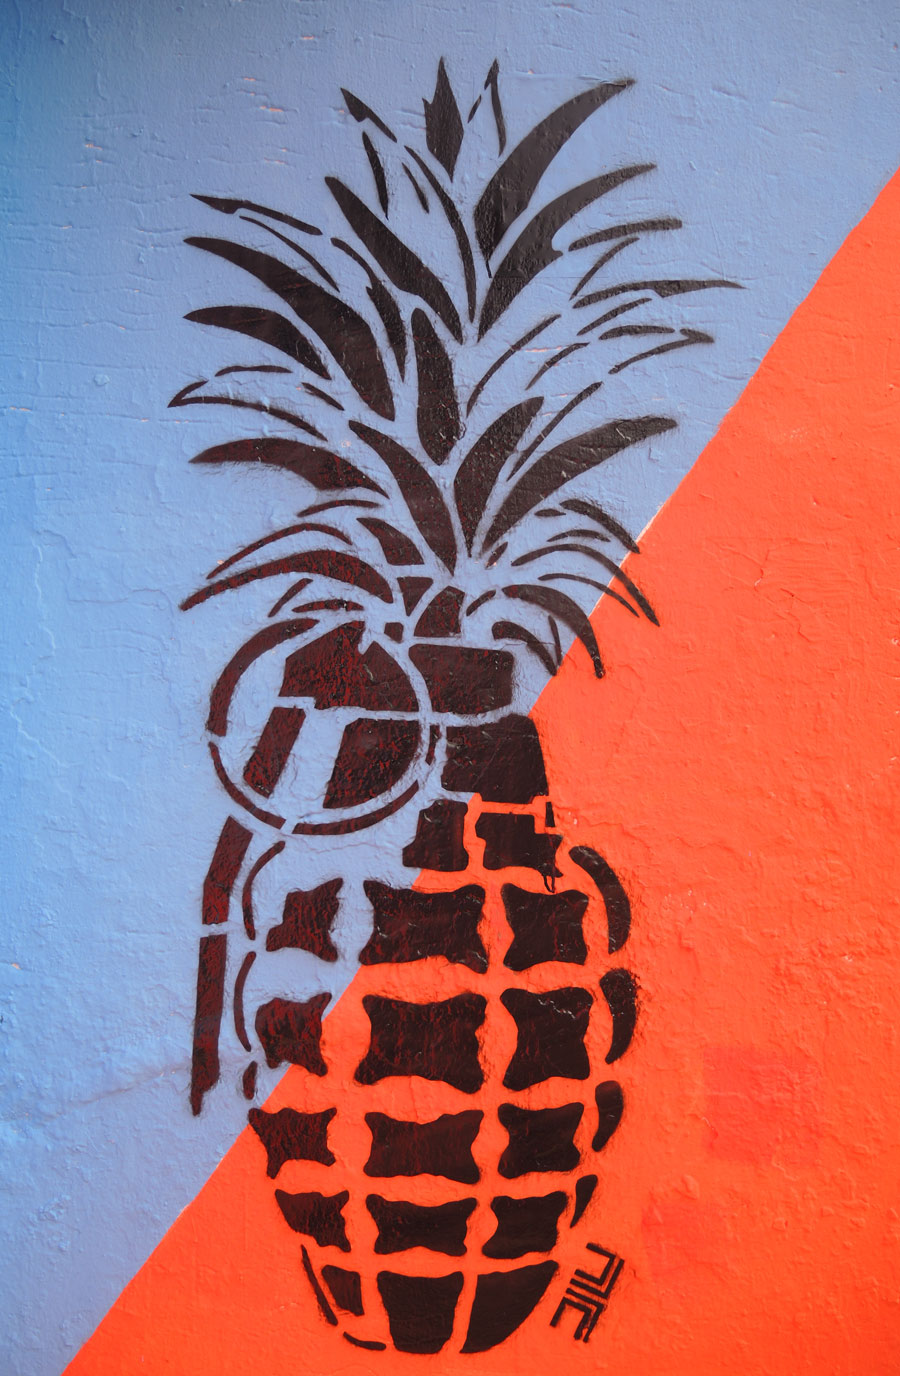 Drawn grenade graffiti Pineapple art hand grenade Peru